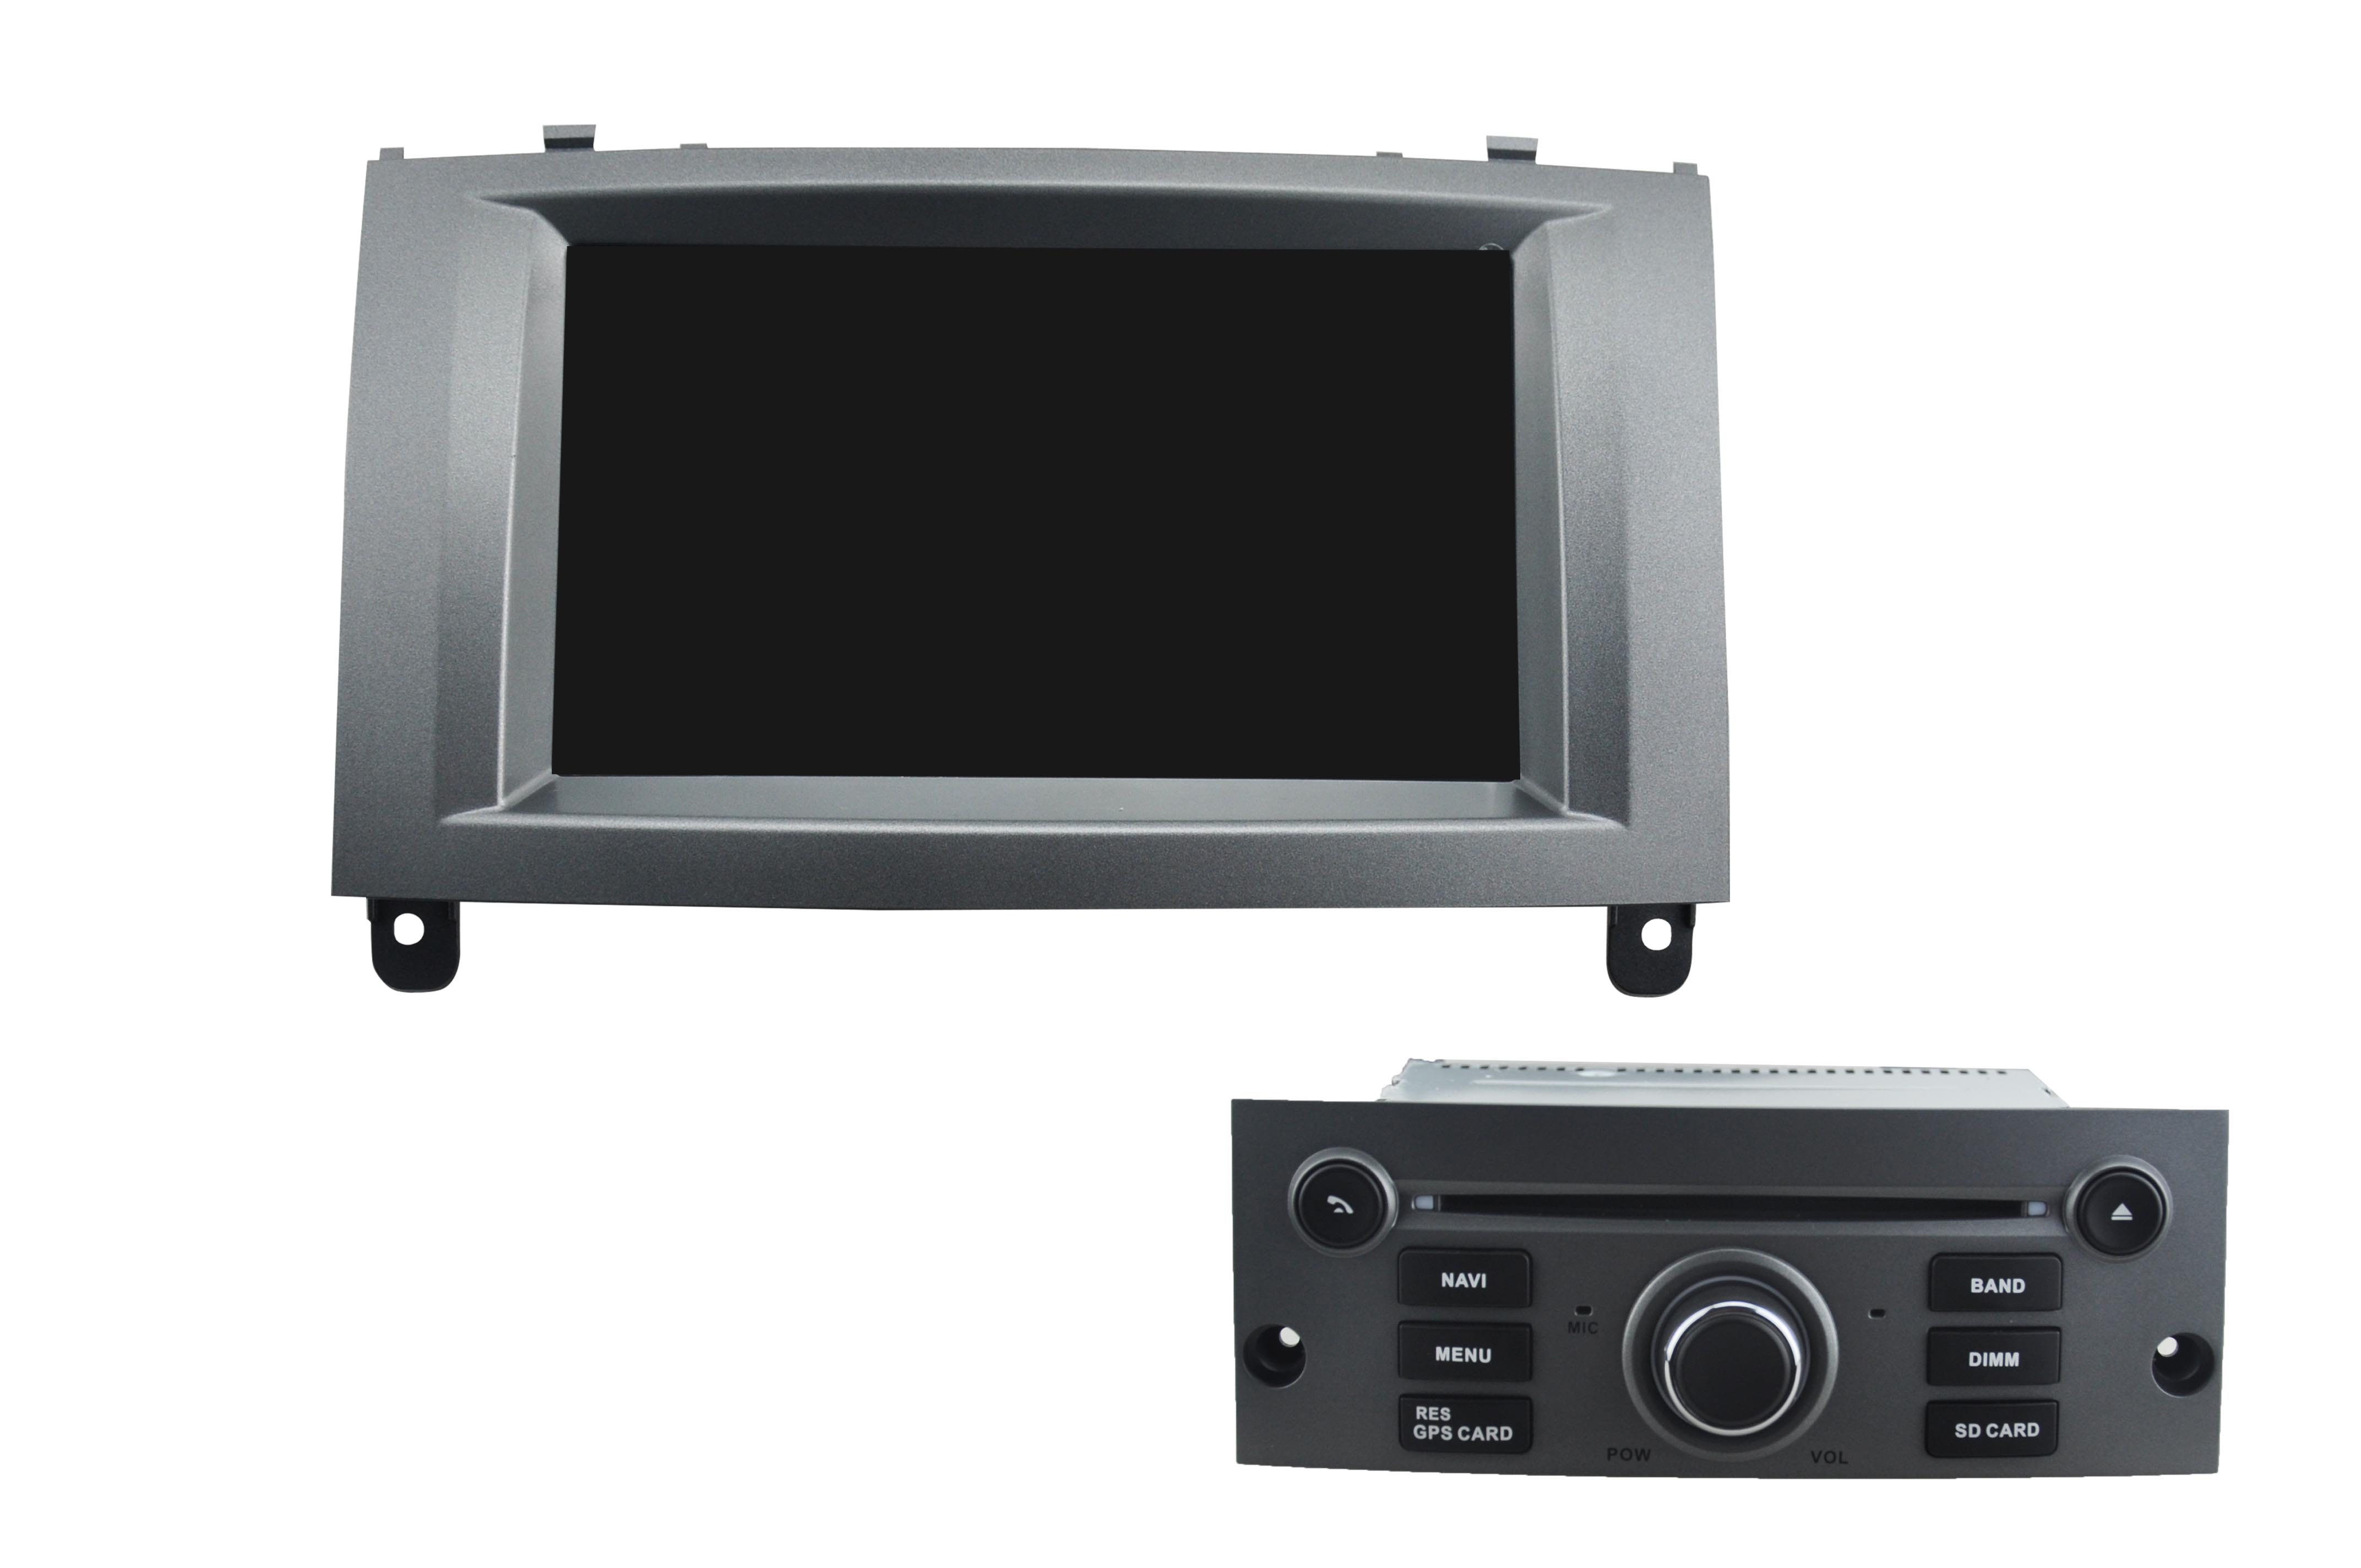 speci ln autor dio s dvd gps pro peugeot 407 ax58 androidr dia. Black Bedroom Furniture Sets. Home Design Ideas